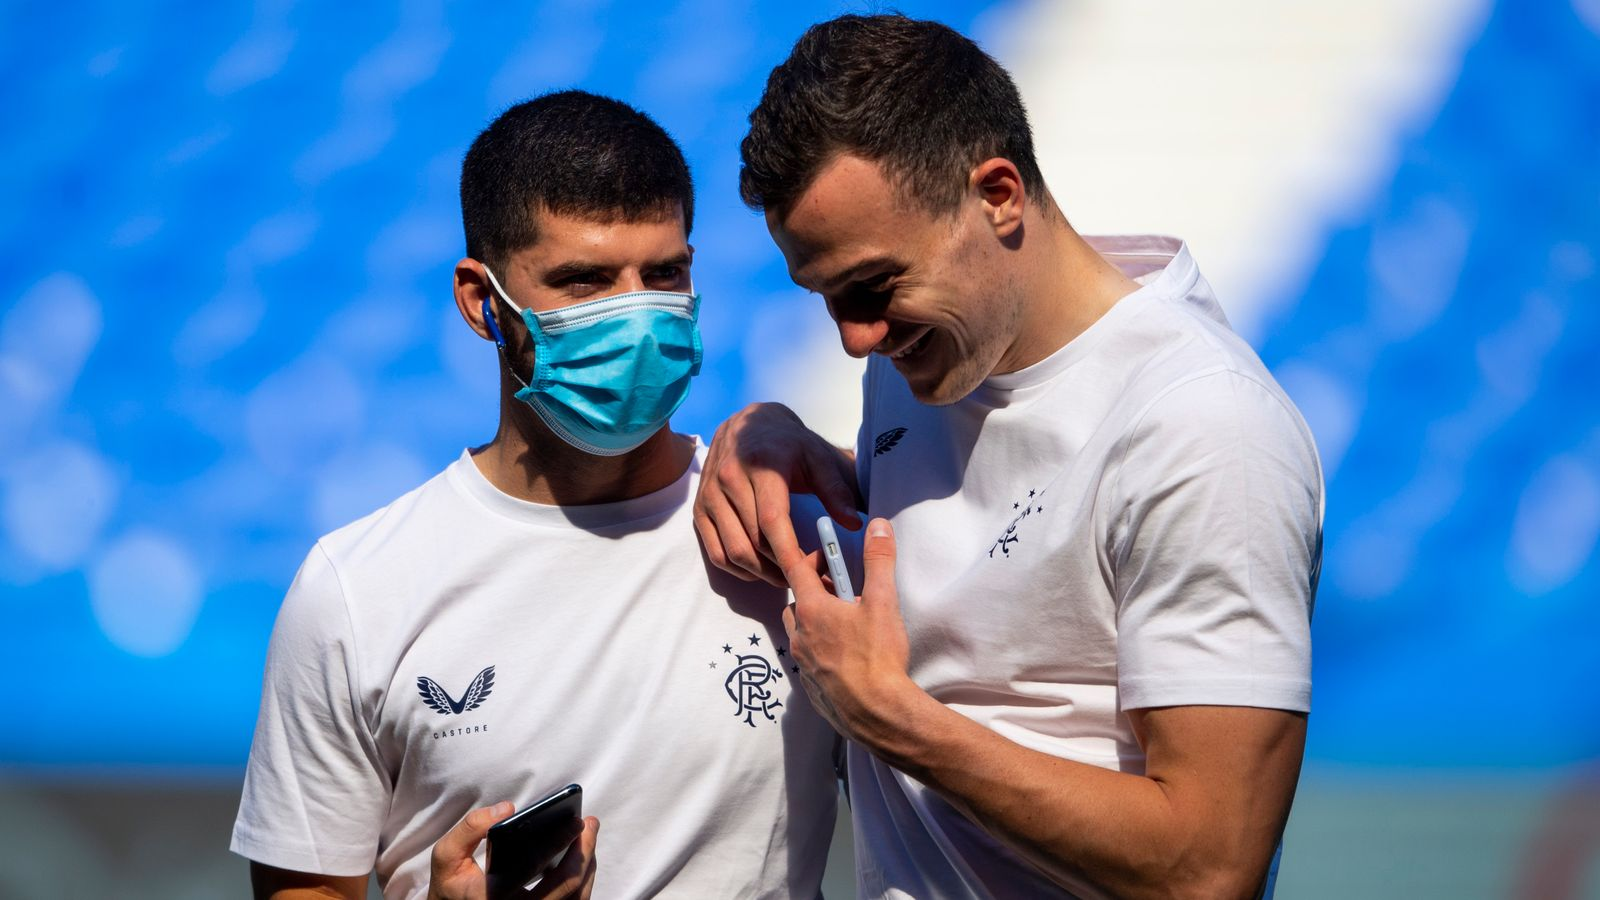 Rangers duo given seven-game bans